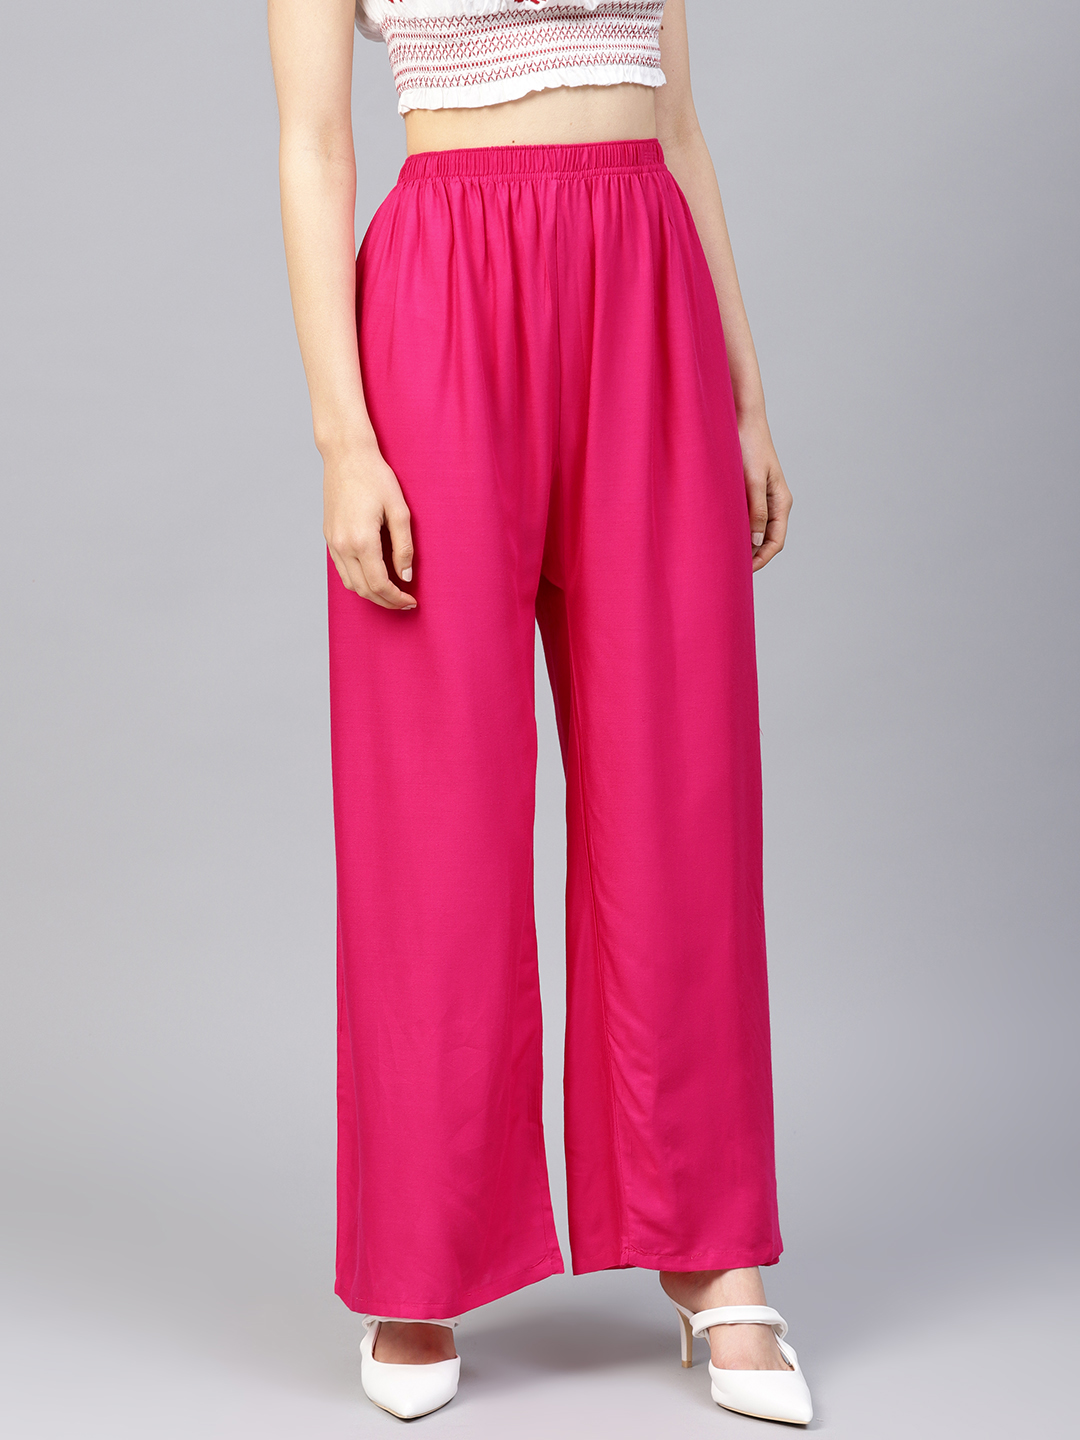 Jompers | Jompers Women Pink Solid Straight Palazzos